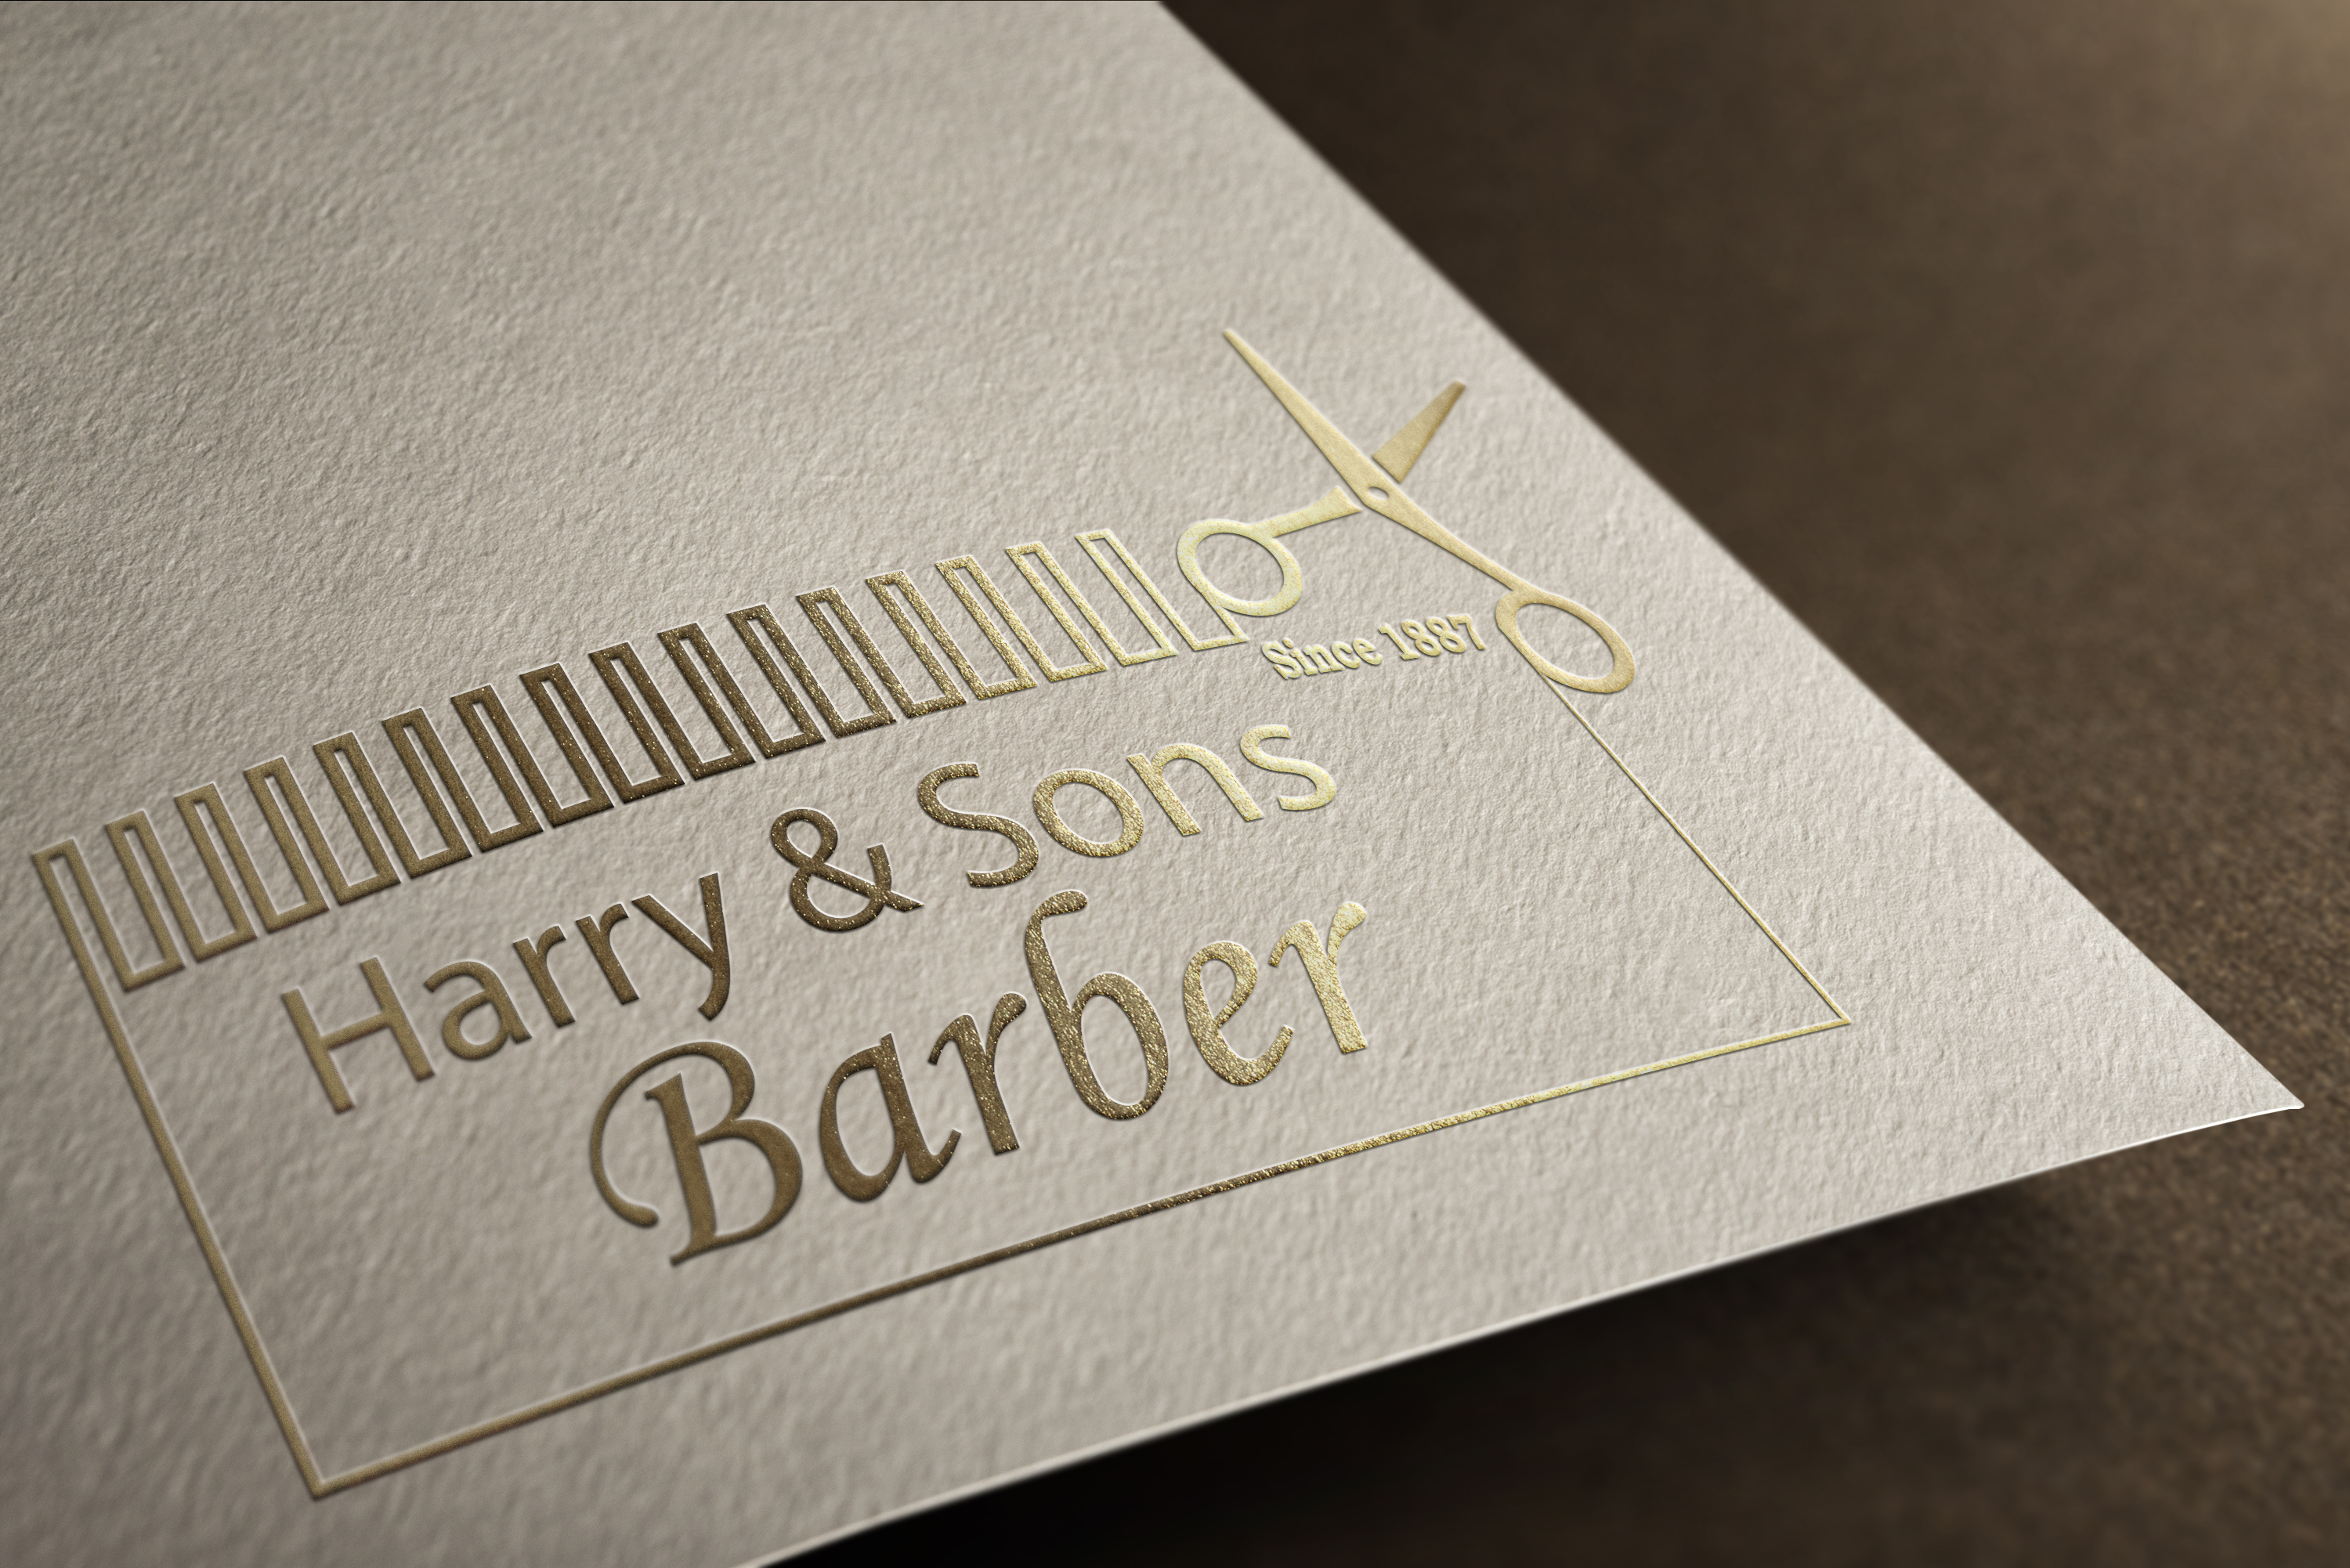 Logo Design by Moeed Khan - Entry No. 238 in the Logo Design Contest Captivating Logo Design for Harry and Sons Barber.